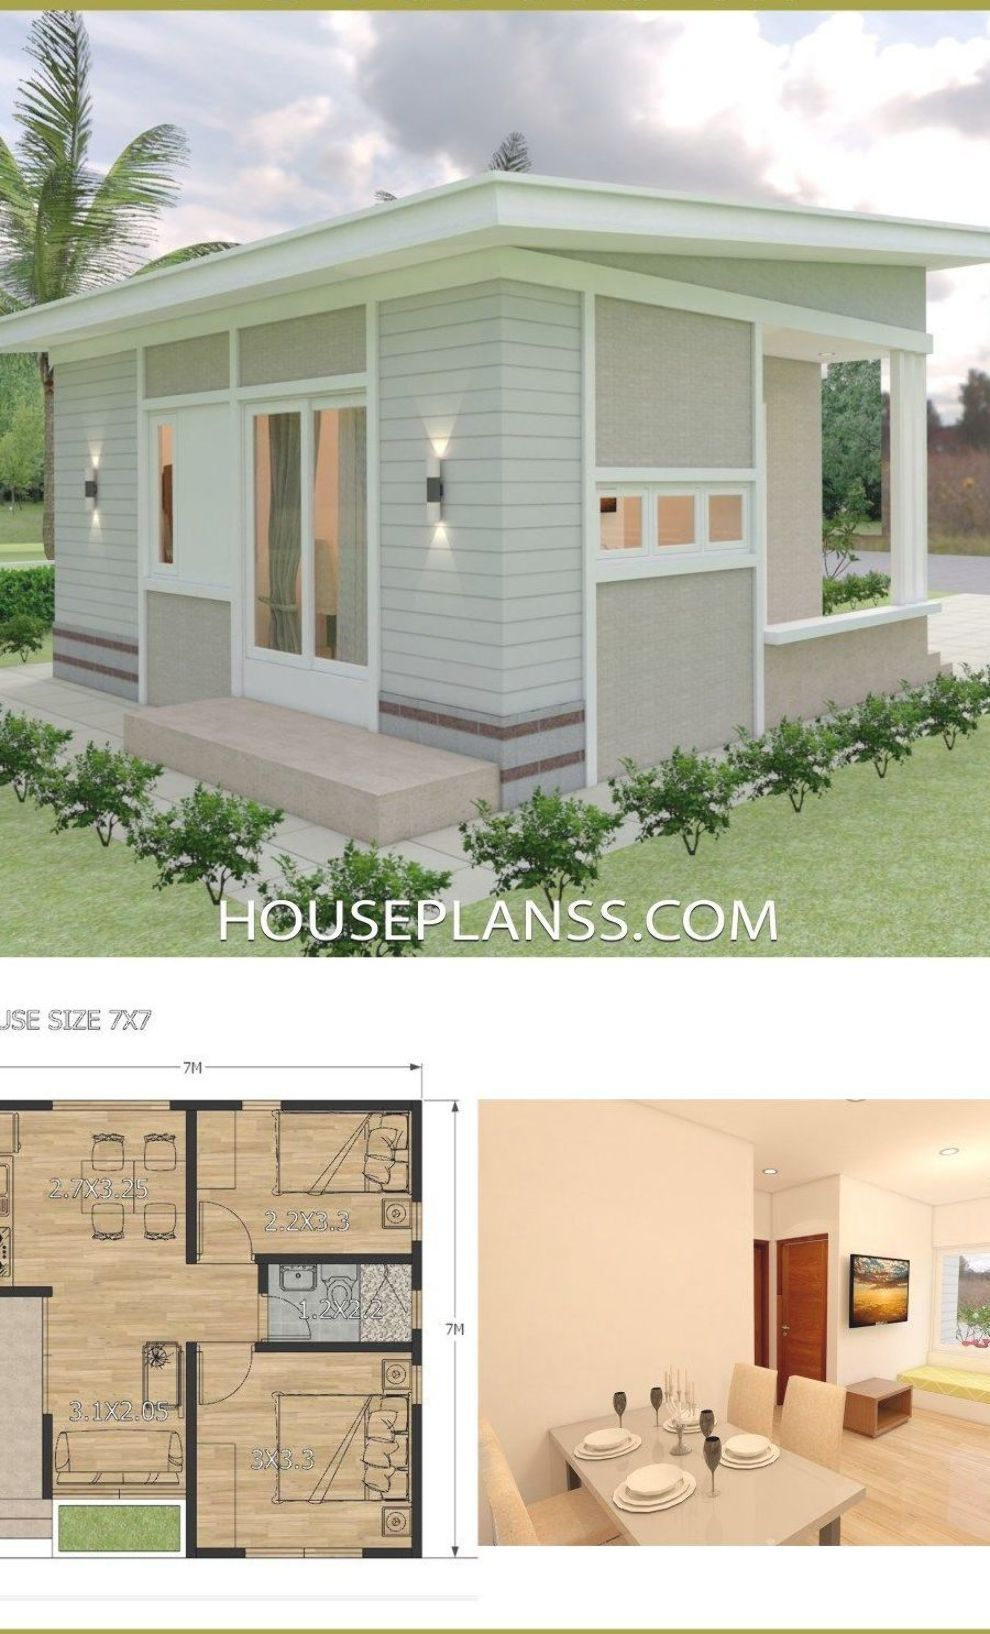 Small House Design Plans 7x7 With 2 Bedrooms House Plans Sam Small House Design Plans Small House Design House Design Pictures